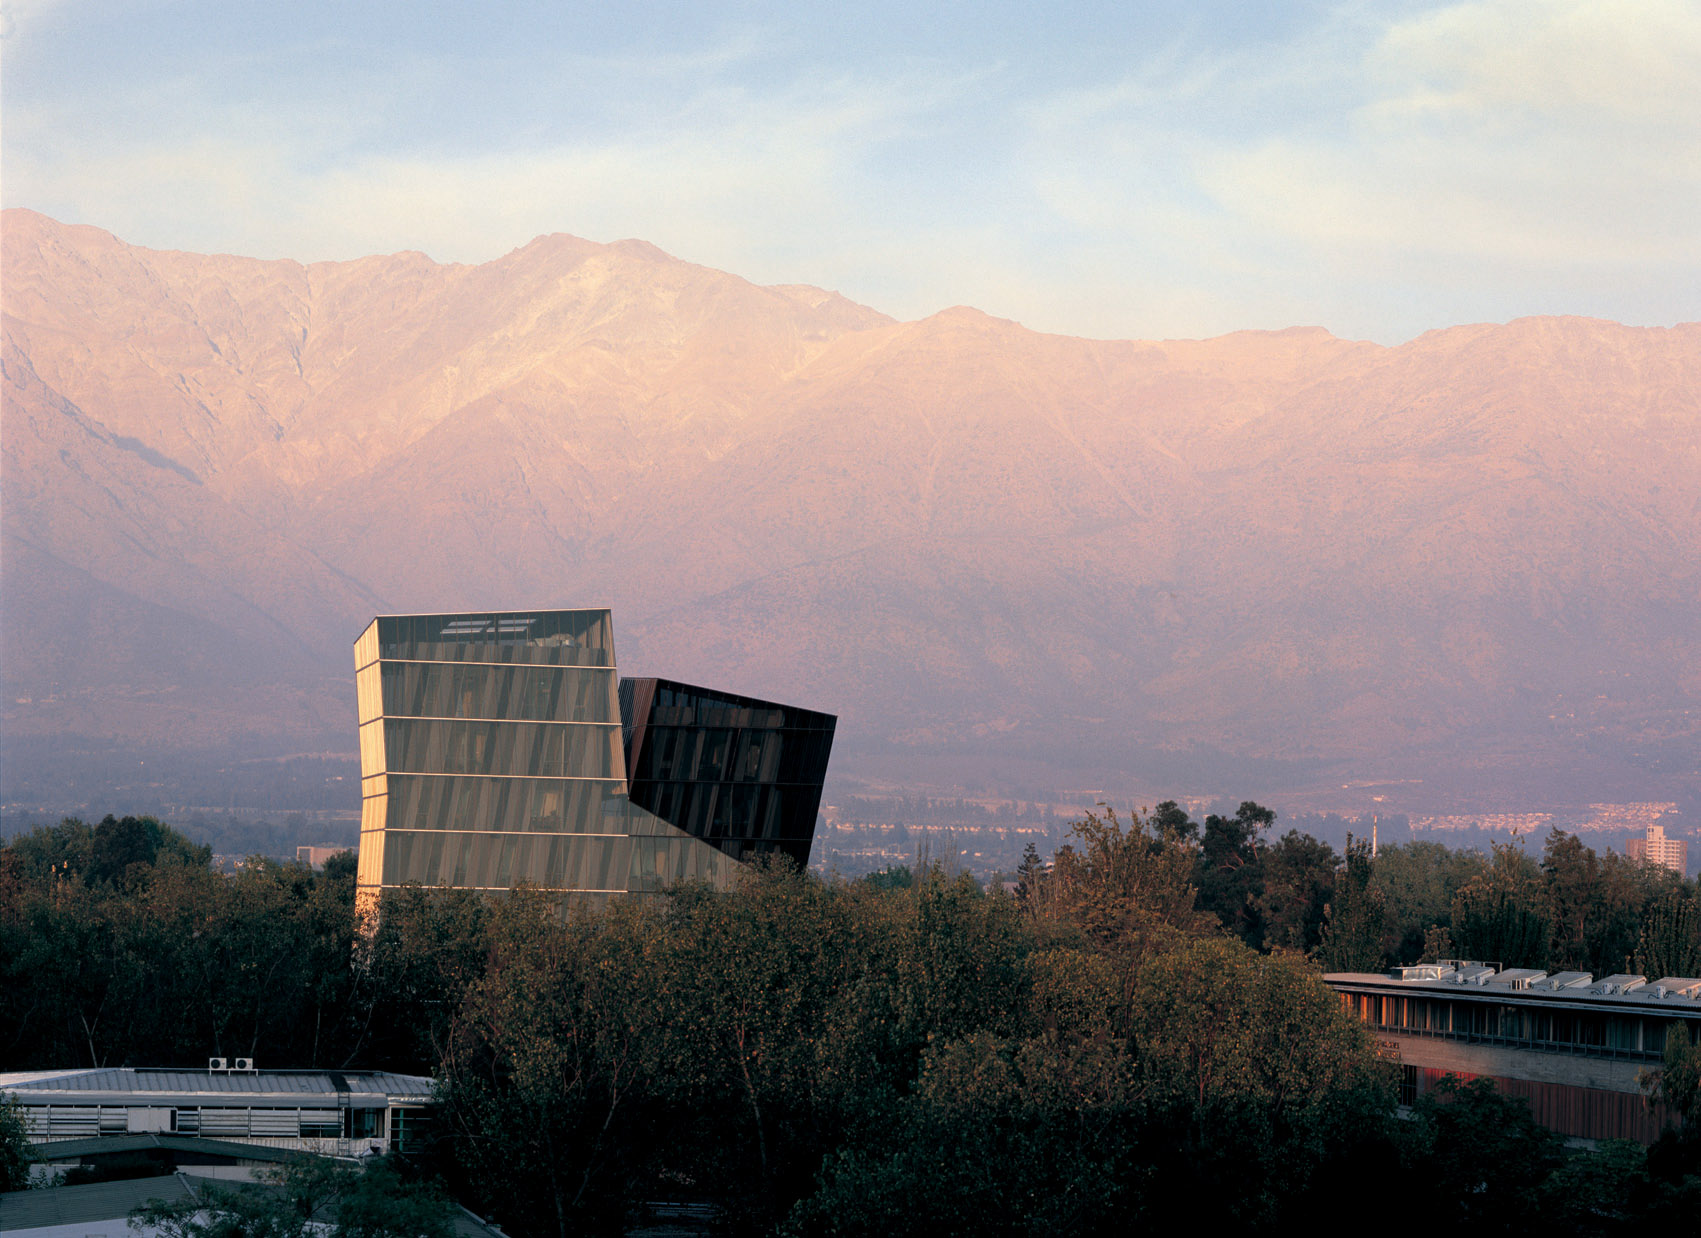 Siamese Towers, 2005, San Joaquín Campus, Universidad Católica de Chile, Santiago, Chile, University classrooms and offices Photo by Cristobal Palma